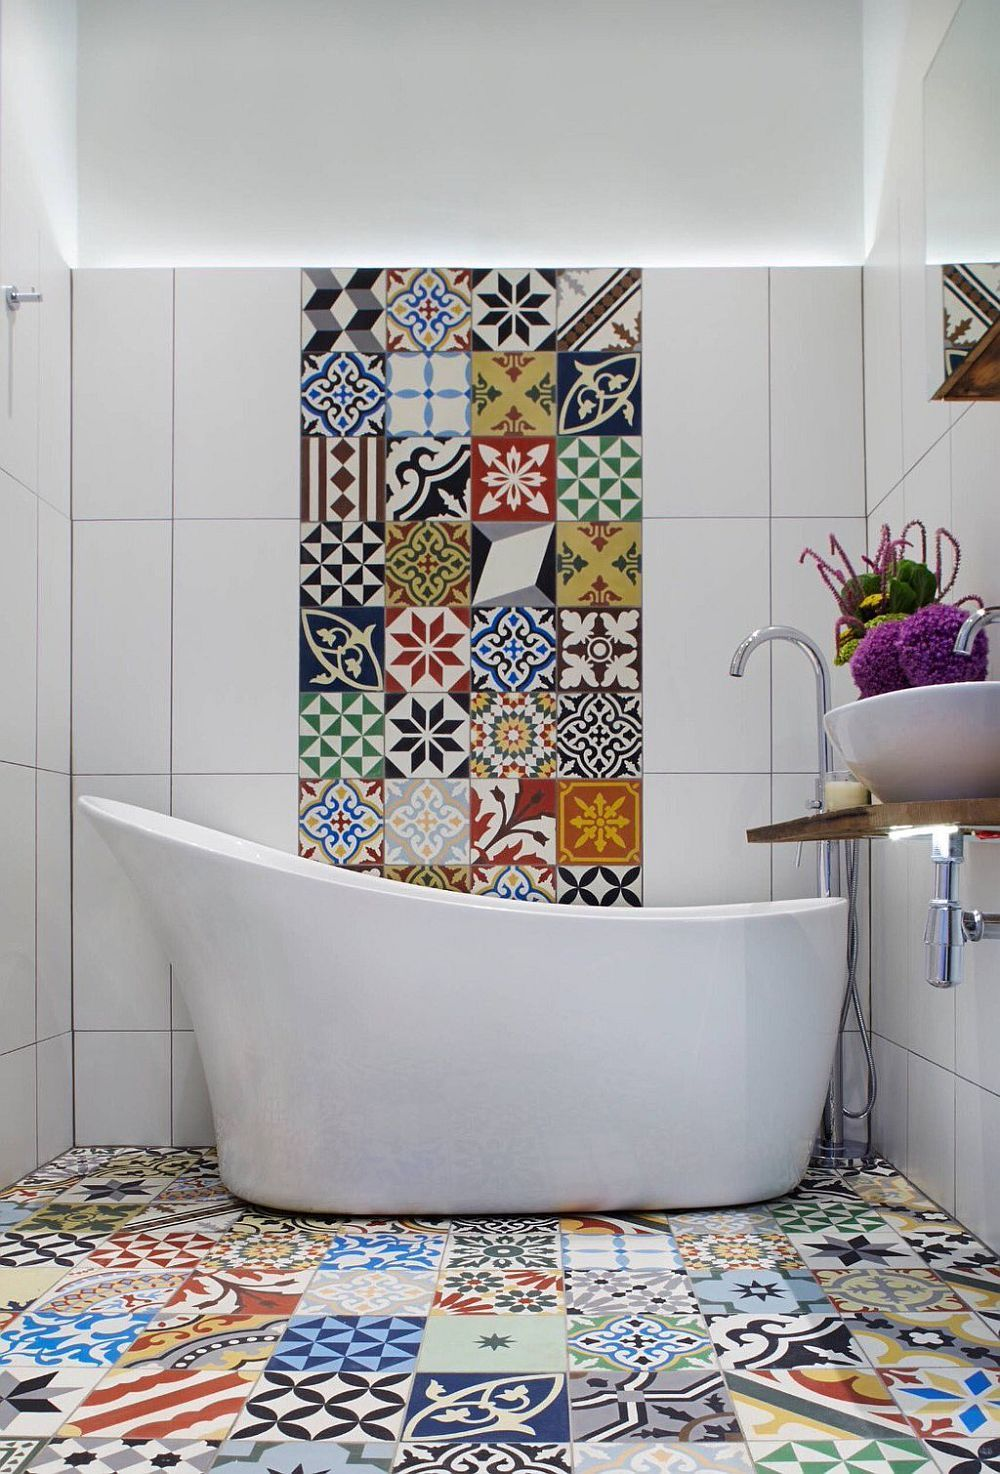 25 Creative Patchwork Tile Ideas Full Of Color And Pattern Eclectic Bathroom Bathroom Trends Small Bathroom Remodel